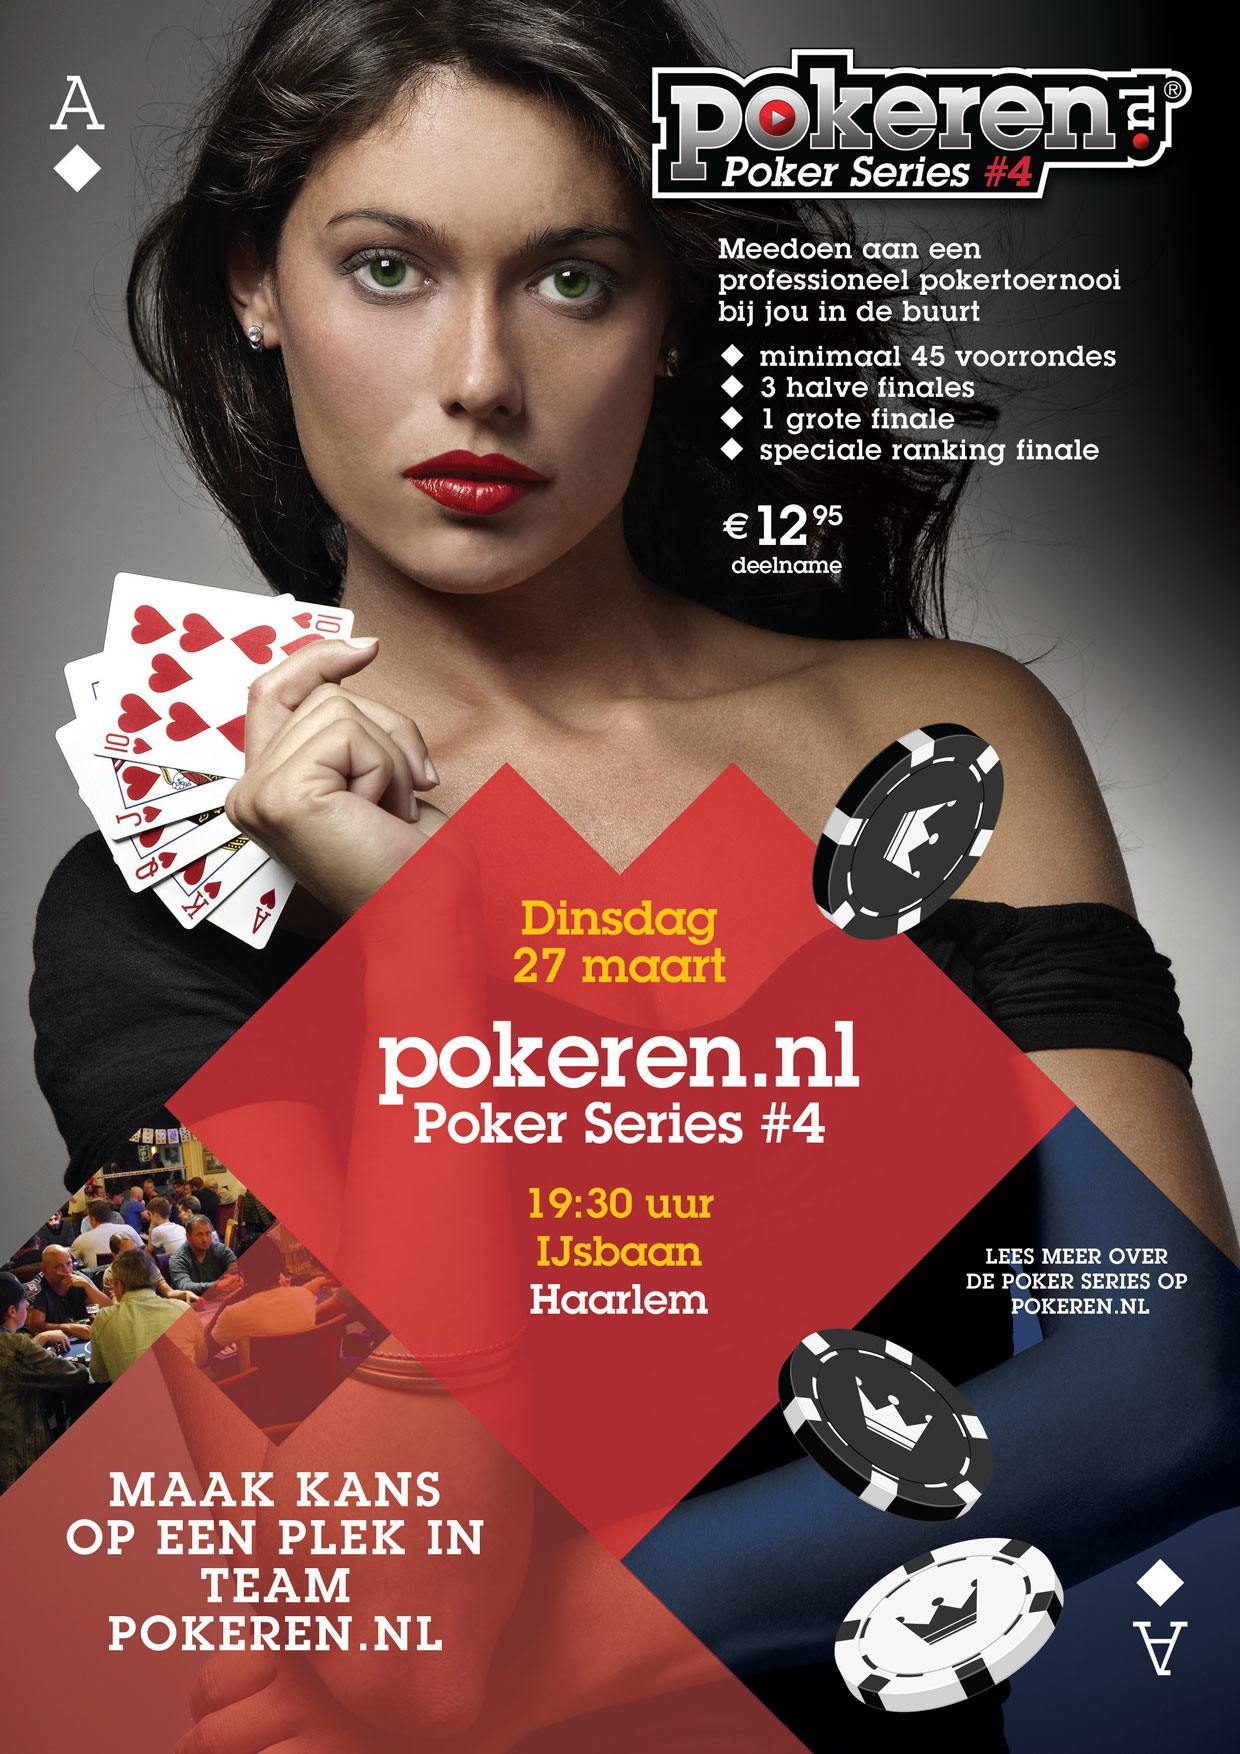 Poker Series Pokeren.nl